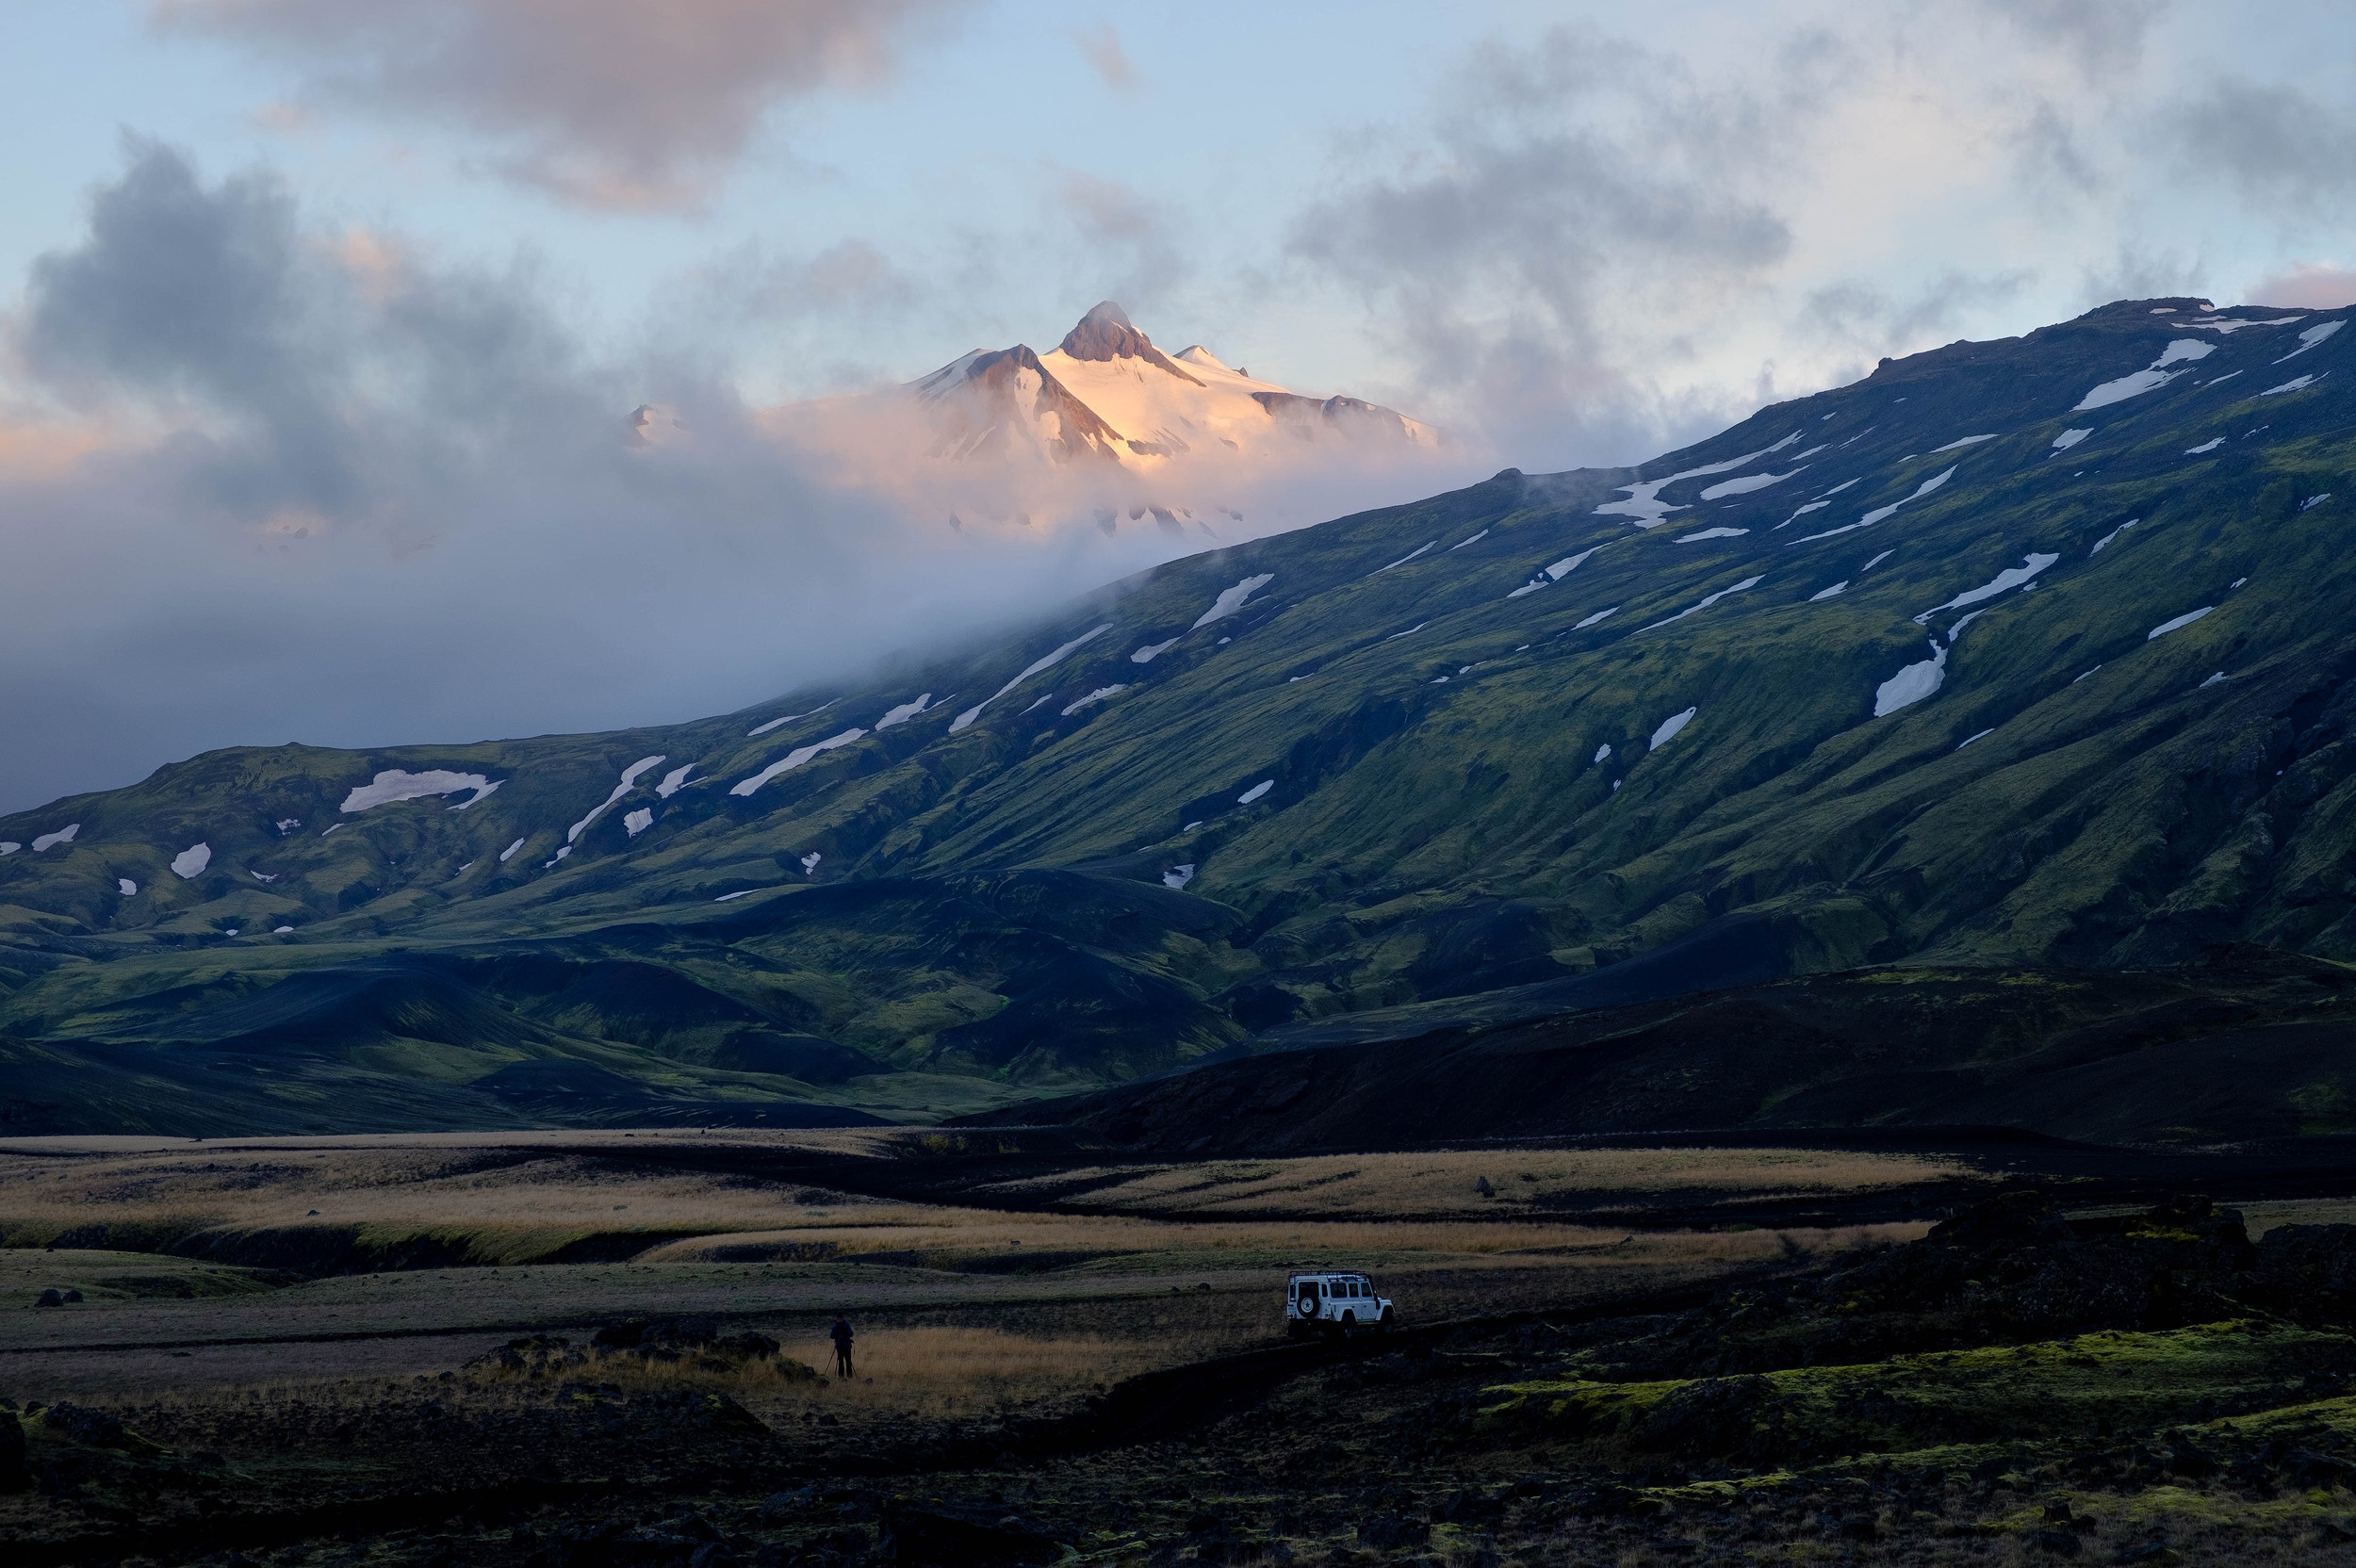 Clouds at sunrise around the peaks of Tindfjöll with our Land Rover parked below